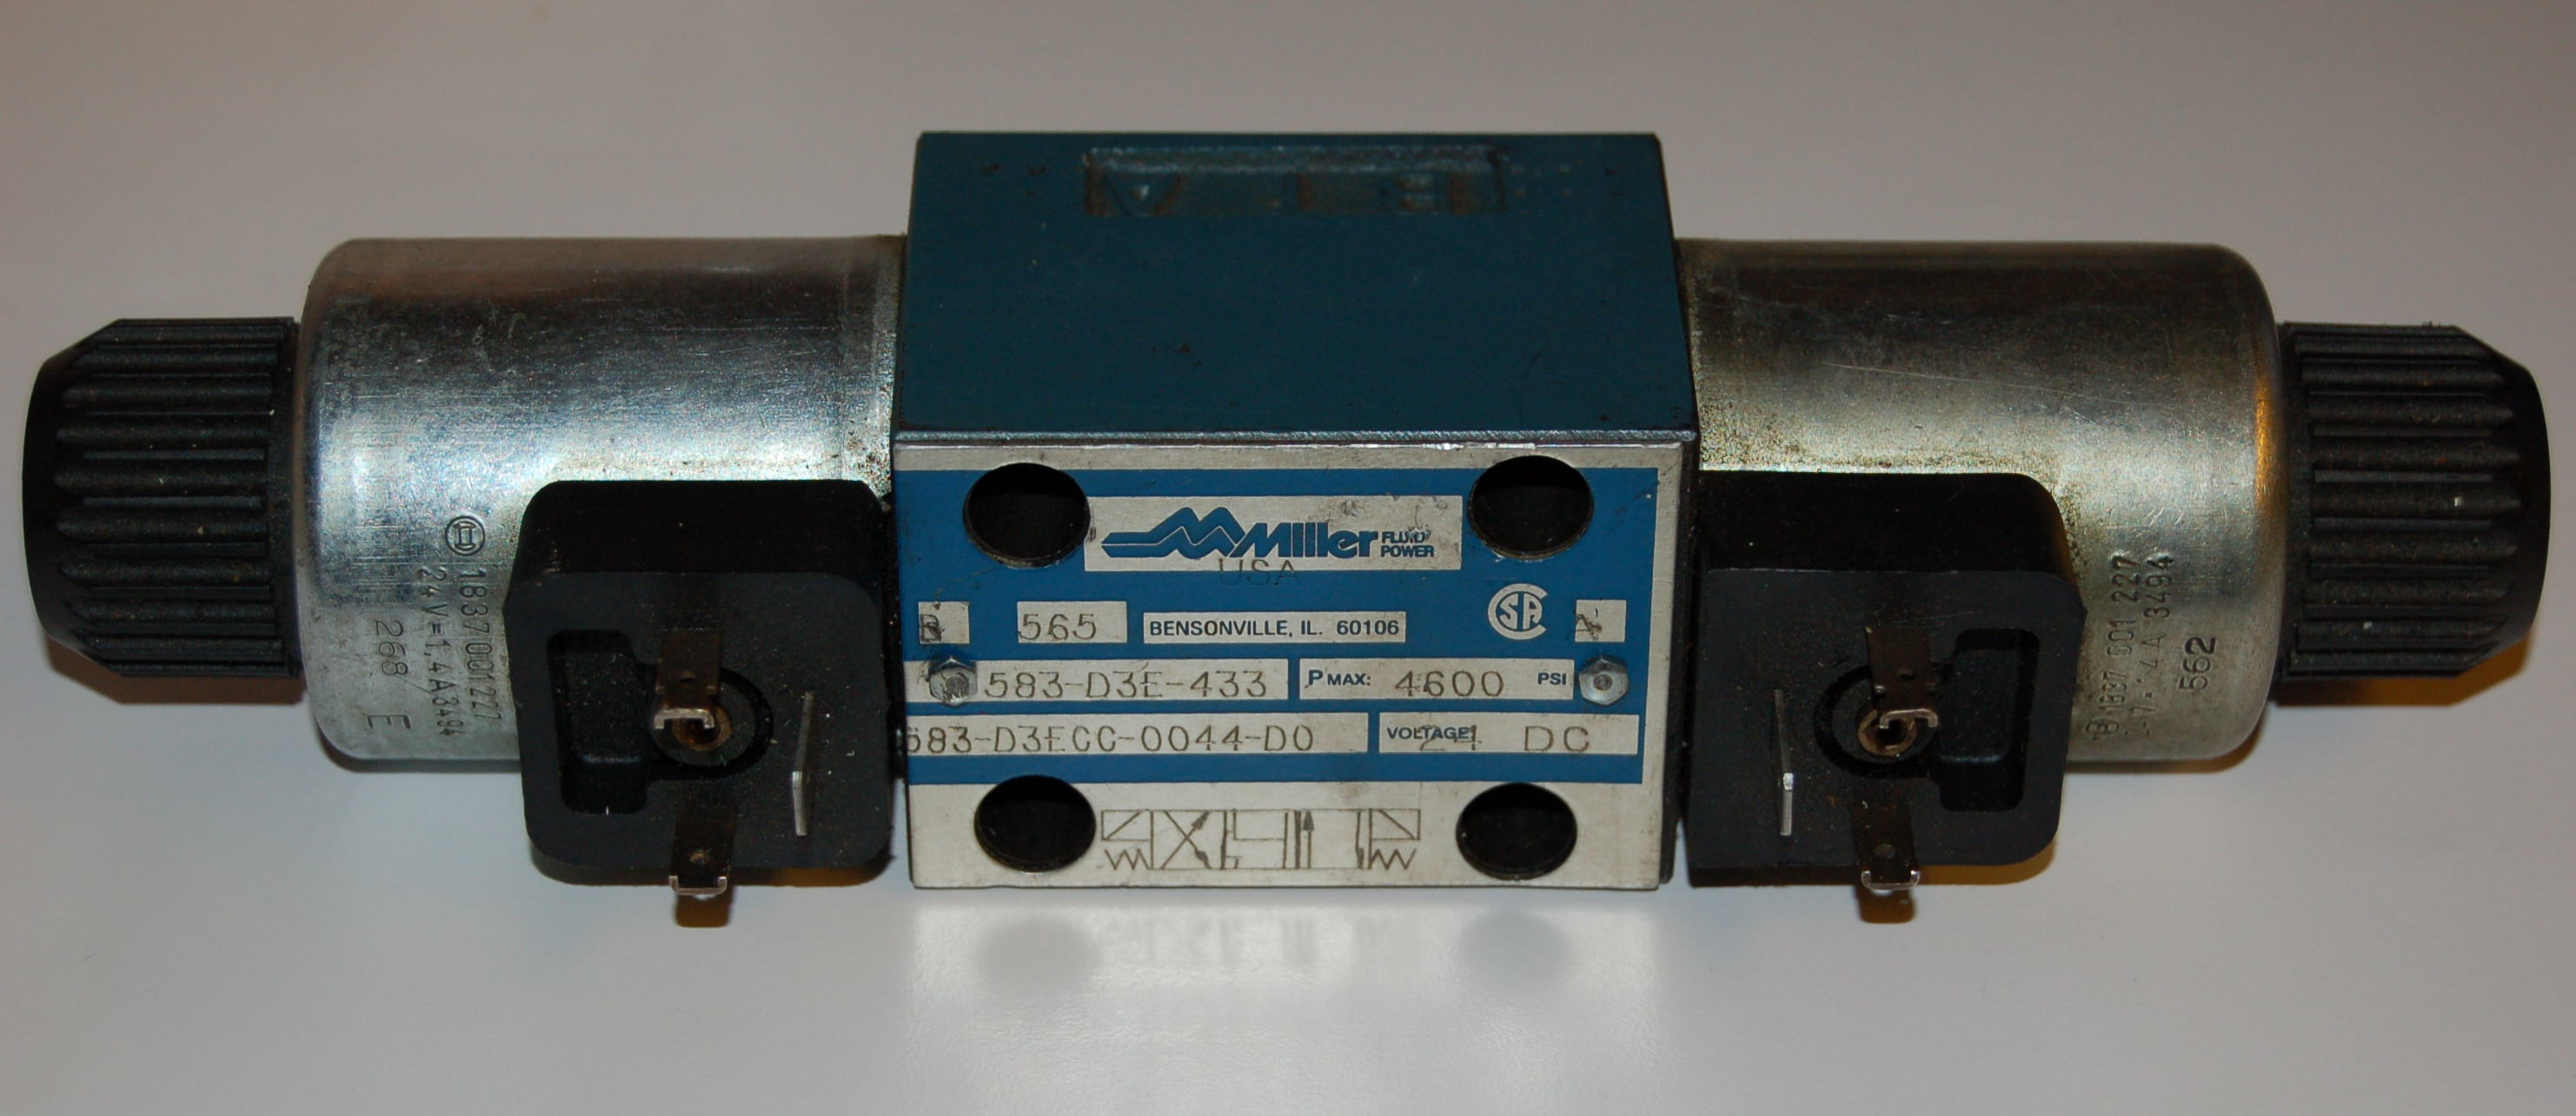 Miller 583-D3E-433 Hydraulic Directional Valve, 4600 PSI (317 bar)